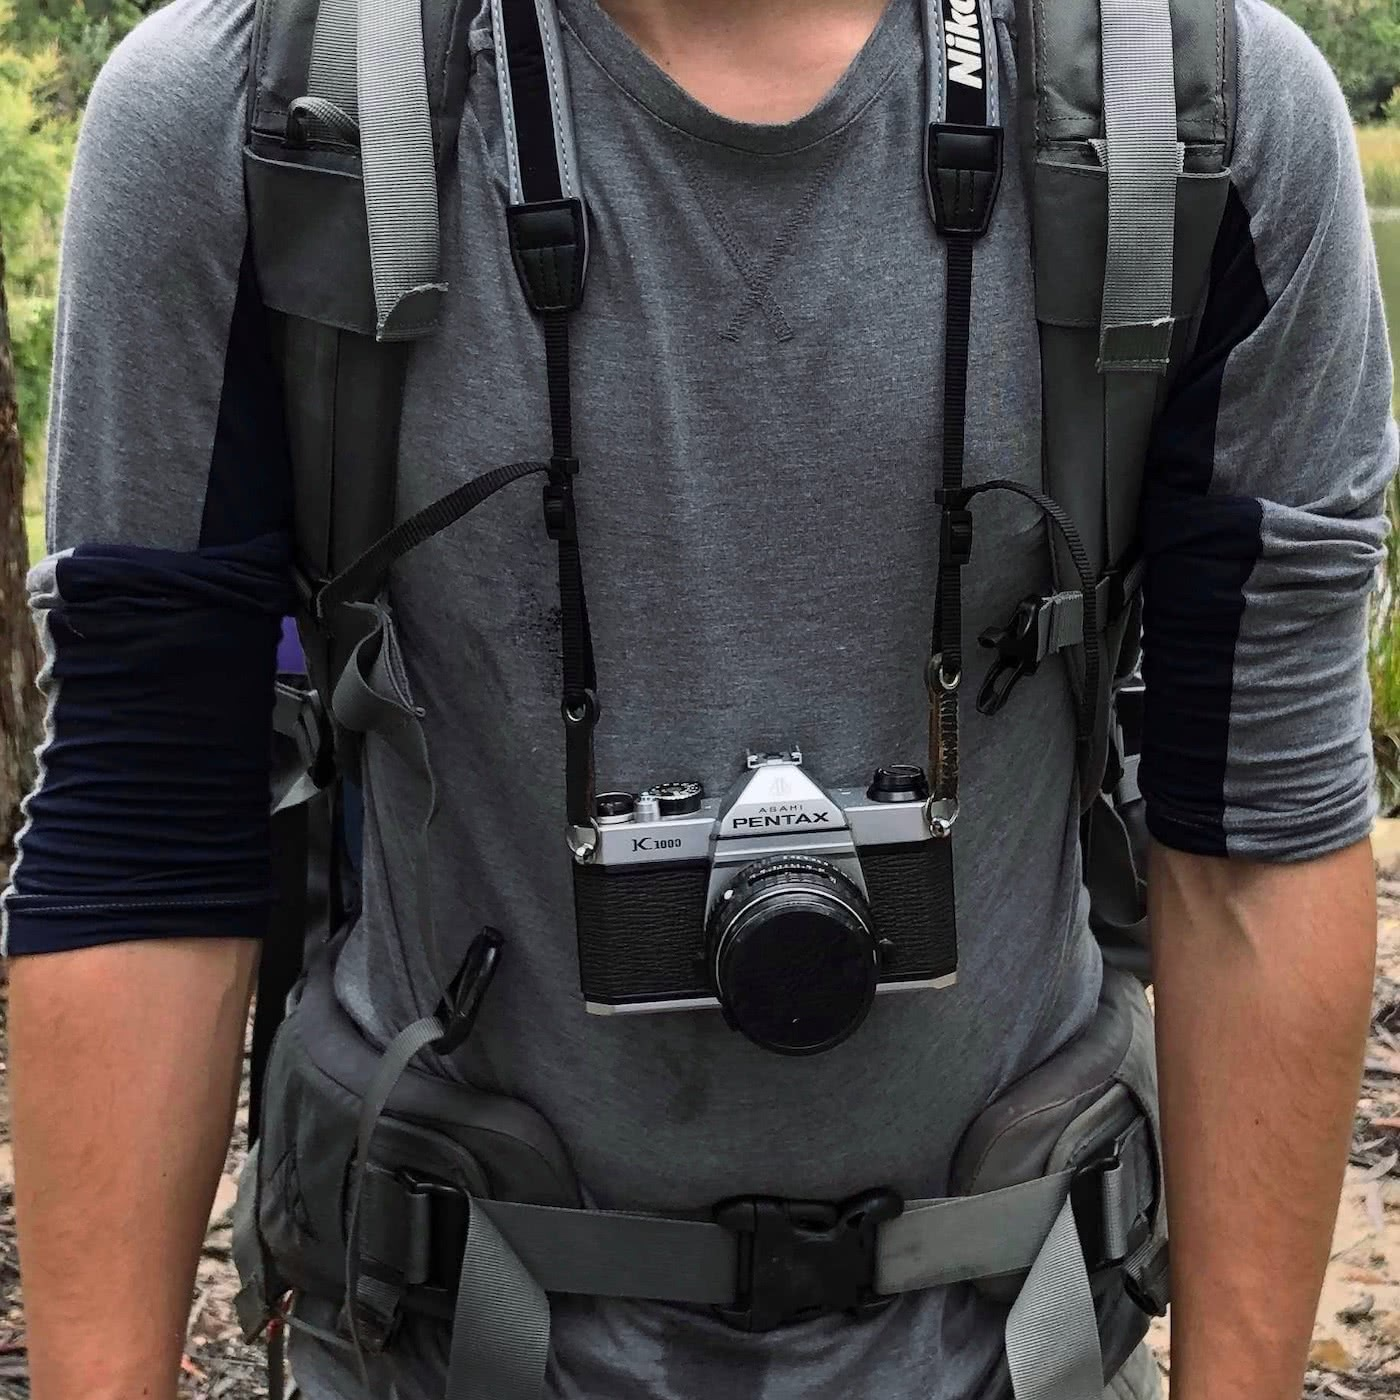 An Explorer's Guide To Hiking With A Camera by Zac de Silva how not to strap in your camera